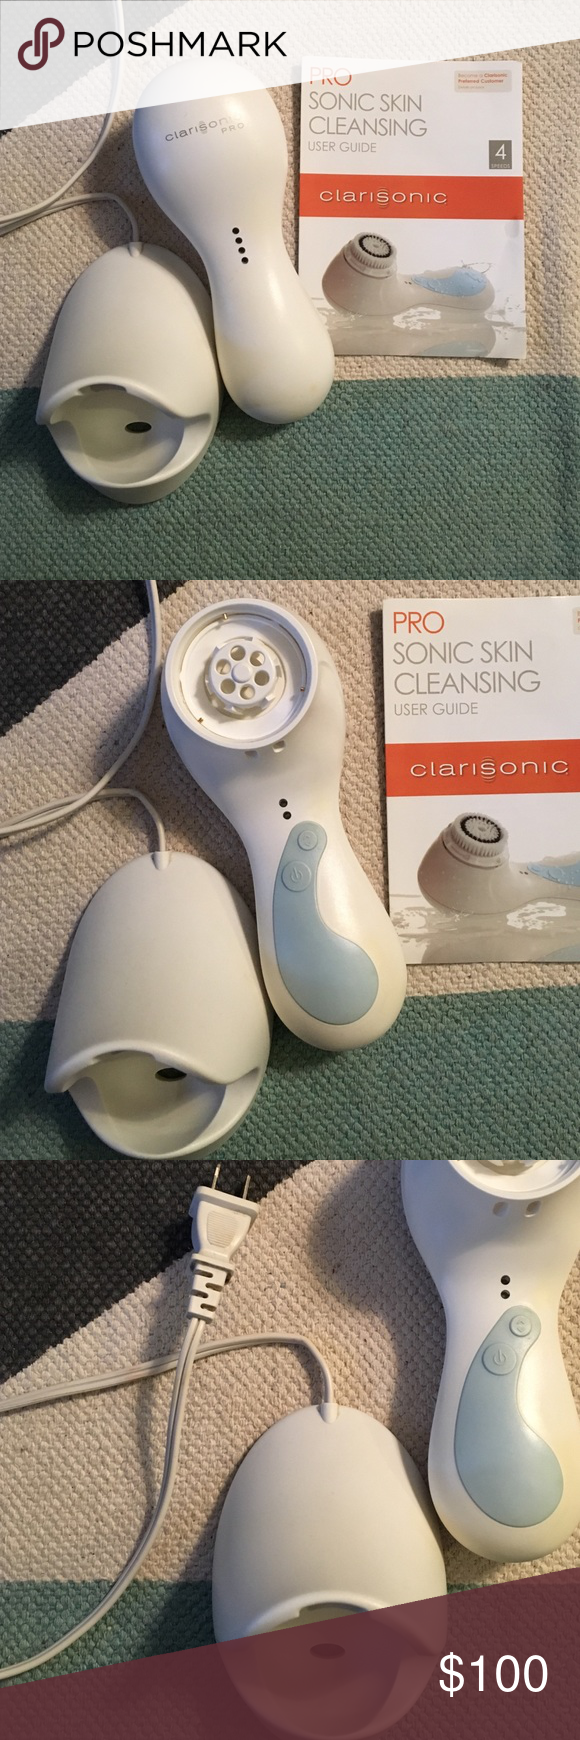 Clarisonic PRO skin cleansing brush Clarisonic PRO 4 speed facial cleansing brush. Just needs a brush head and is ready to go! No signs of wear has been loved and cared for, just two spots on the front base that you can not notice from the pics. Includes manual! Other